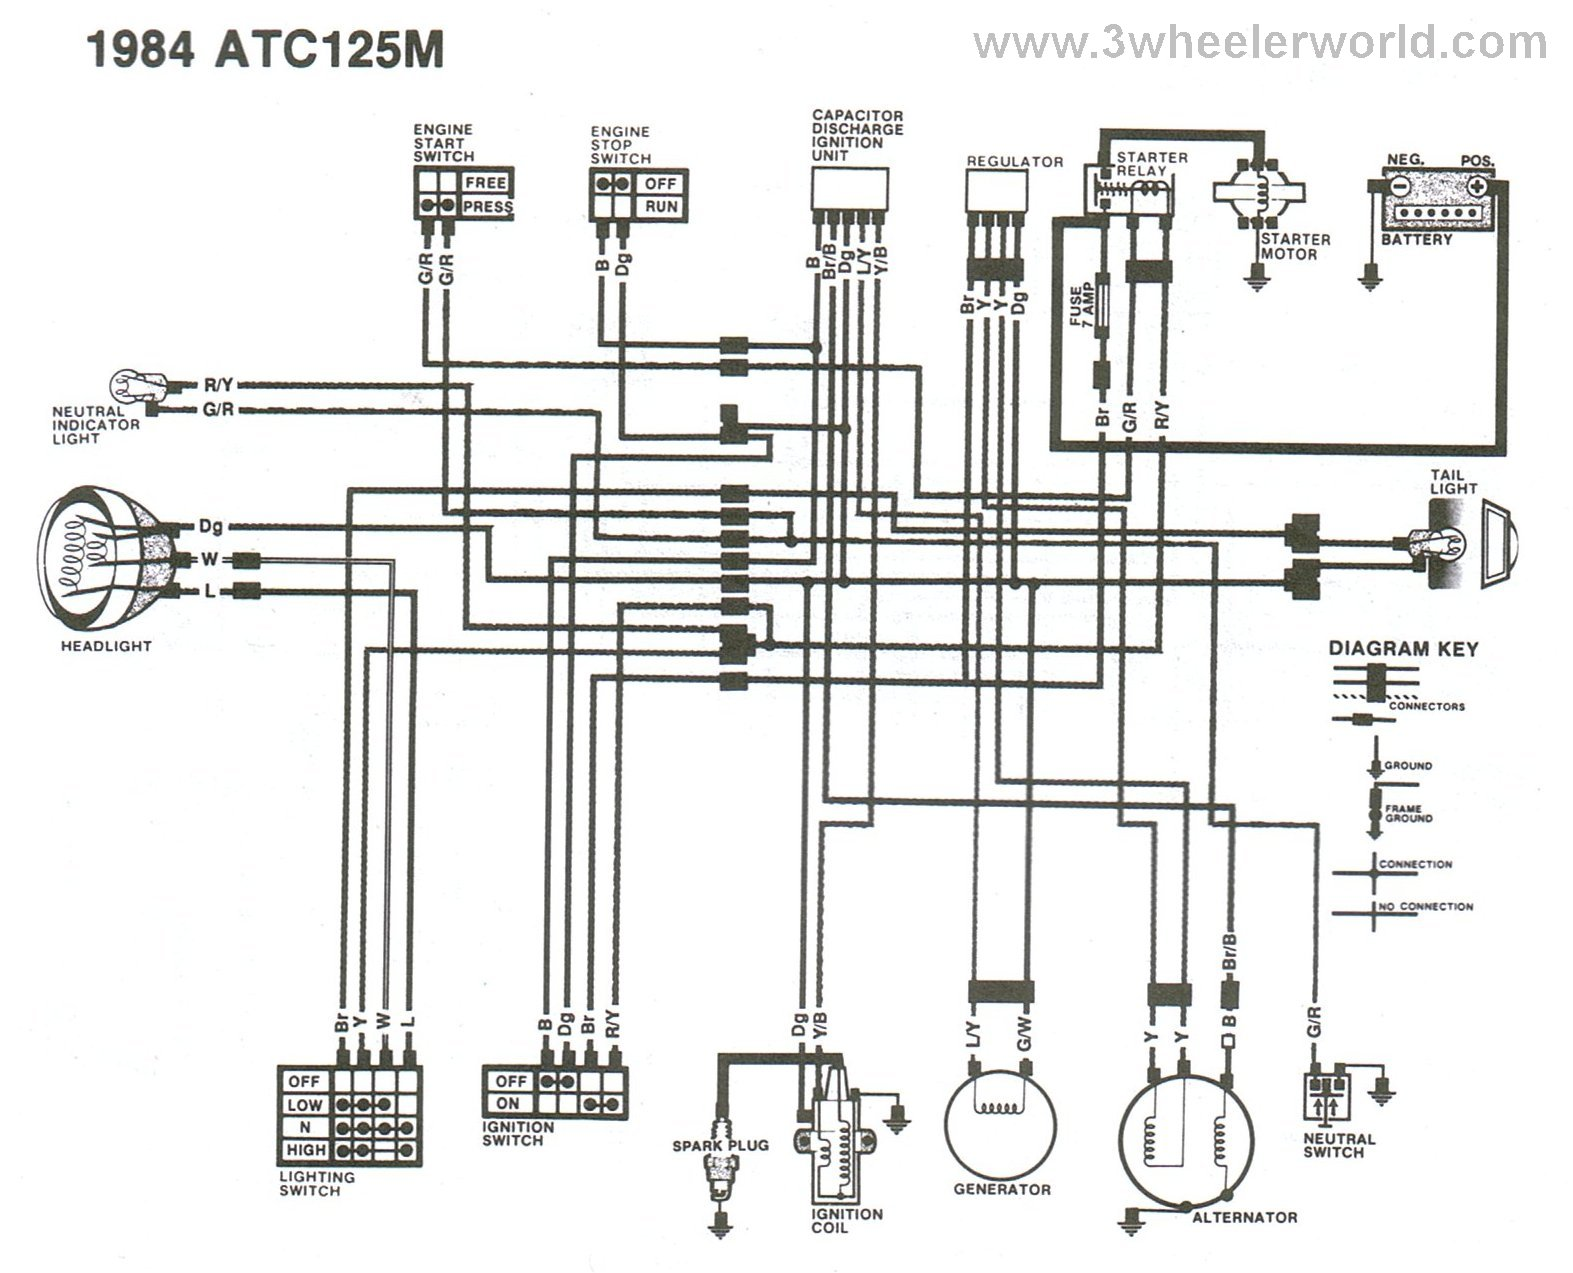 3wheeler World Honda Atc Wiring Diagrams 600 Car Specs Article Preview